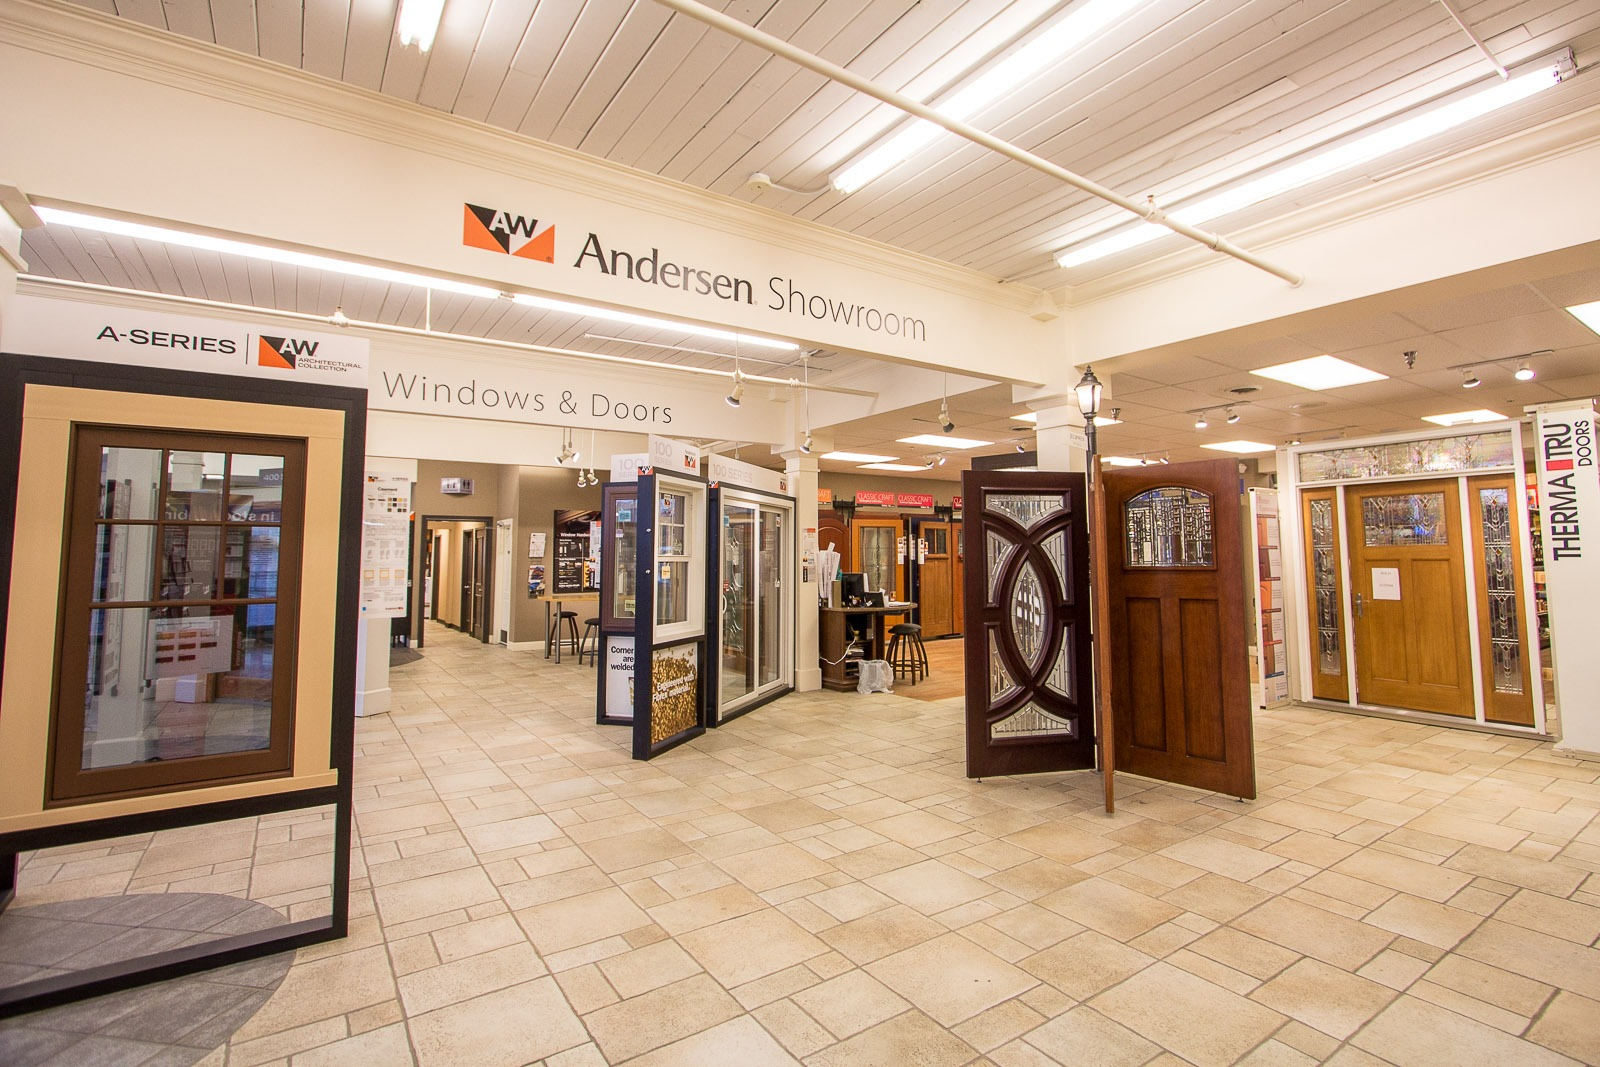 1067 #A1612A Andersen Windows And Doors Showroom IL And IN Schilling save image Andersen Commercial Doors 45371600